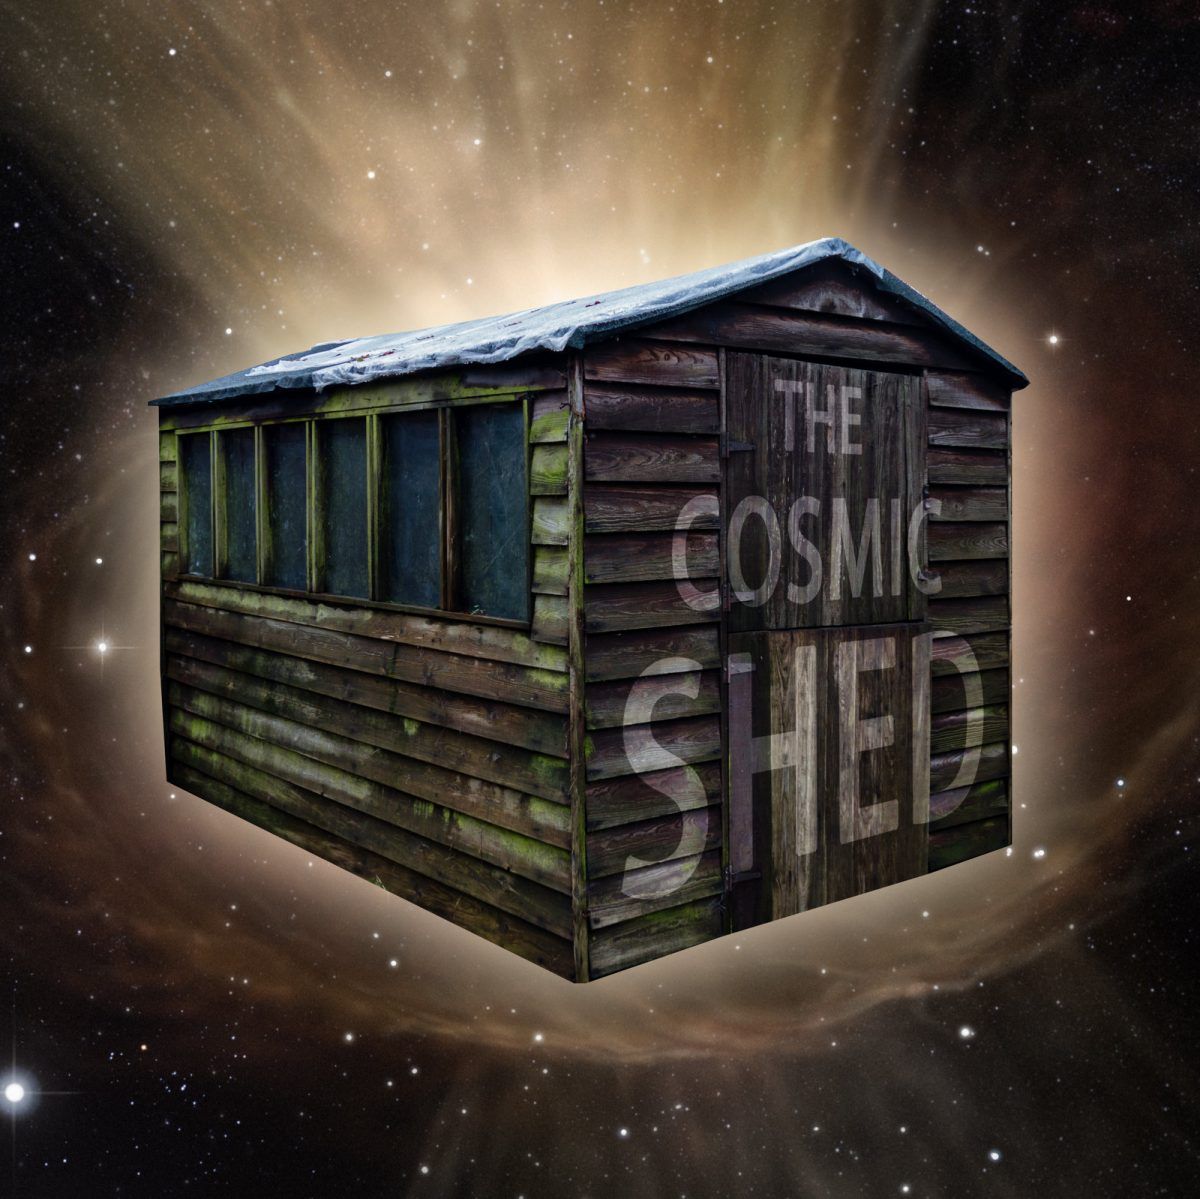 Making an award winning podcast: podcasts can be a great way to do science communication and have a lot of fun!